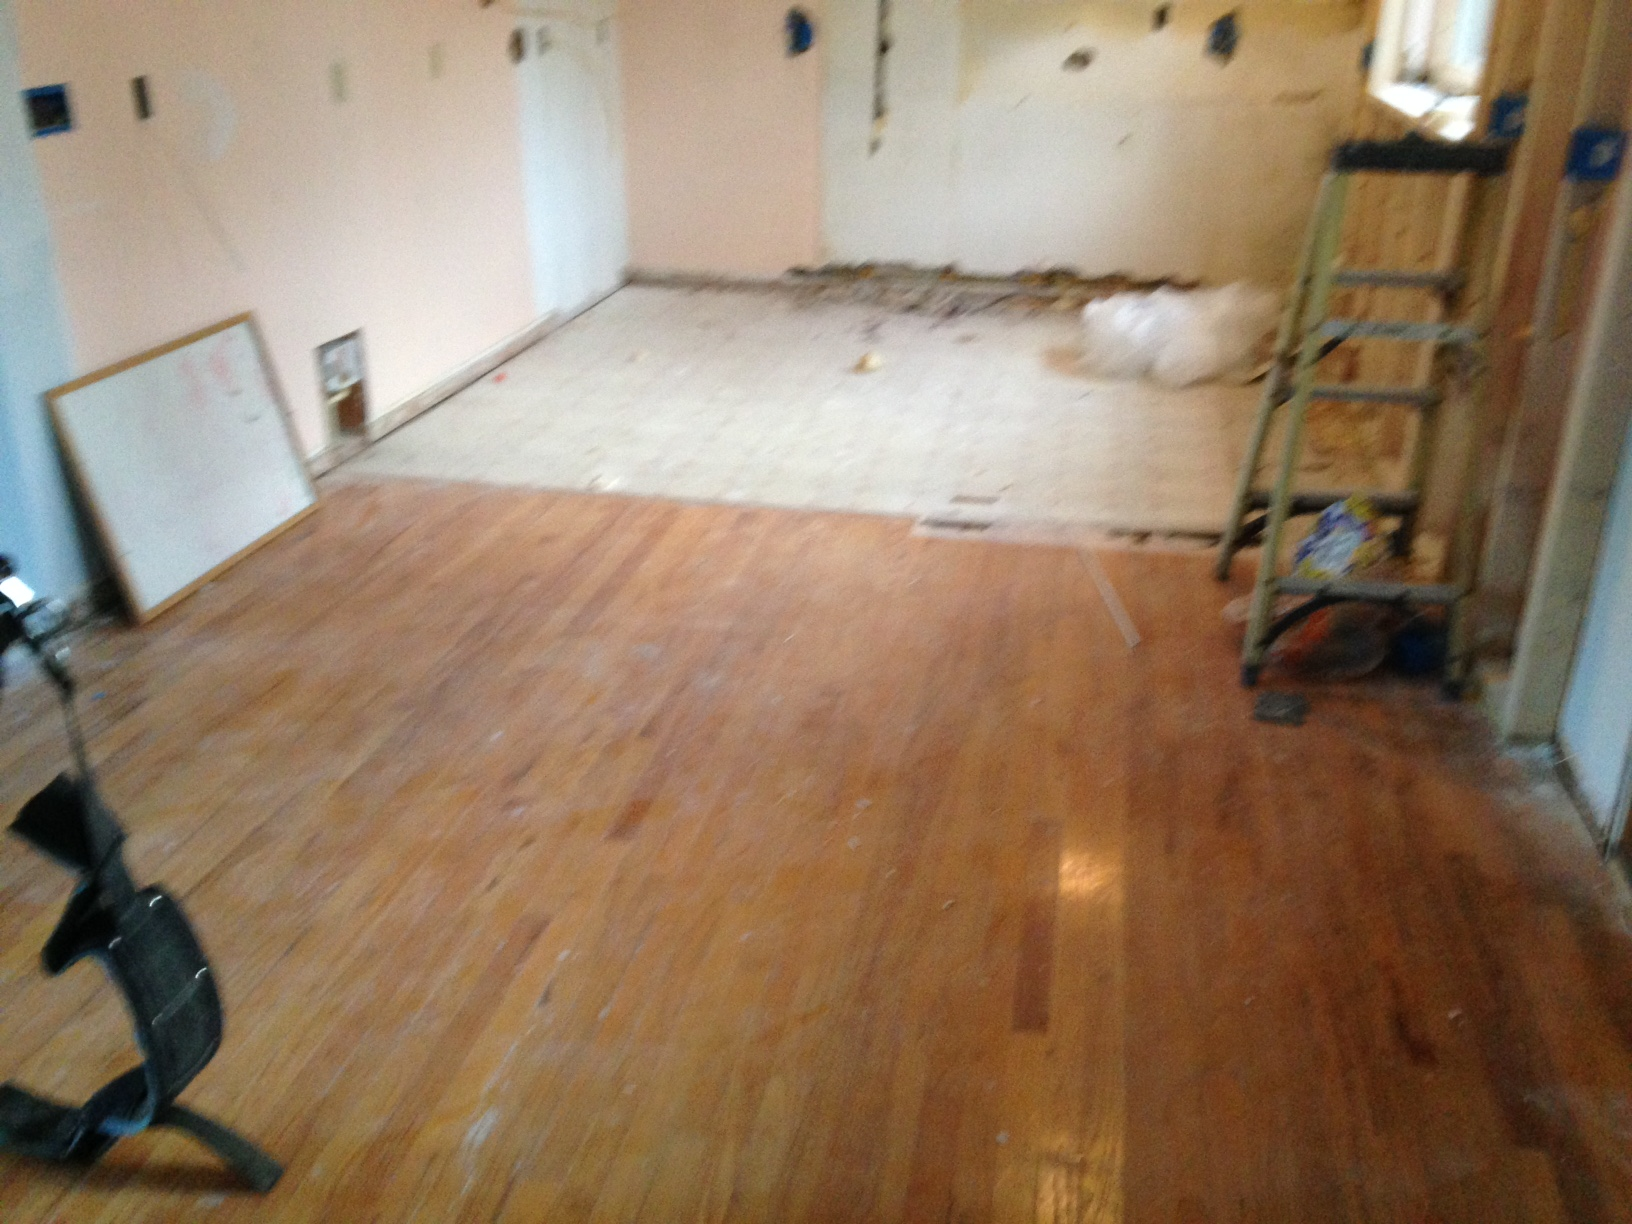 preparing to refinish wood floors in beach